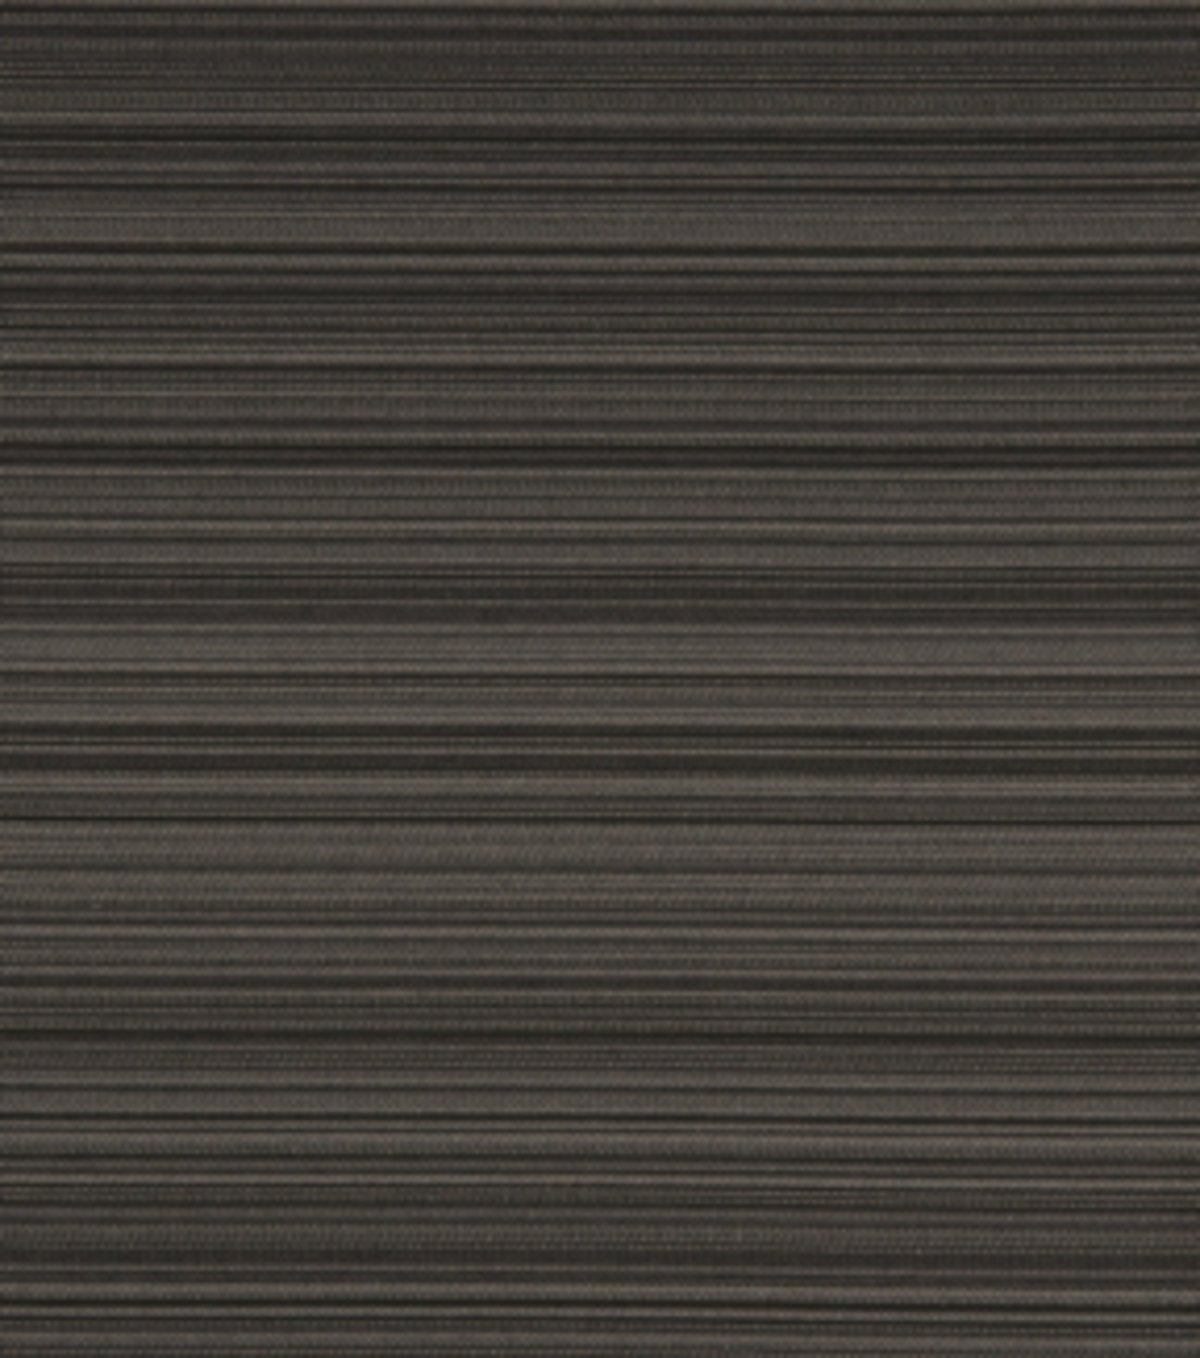 Home Decor 8\u0022x8\u0022 Fabric Swatch-Bella Dura Babe Ruth Onyx